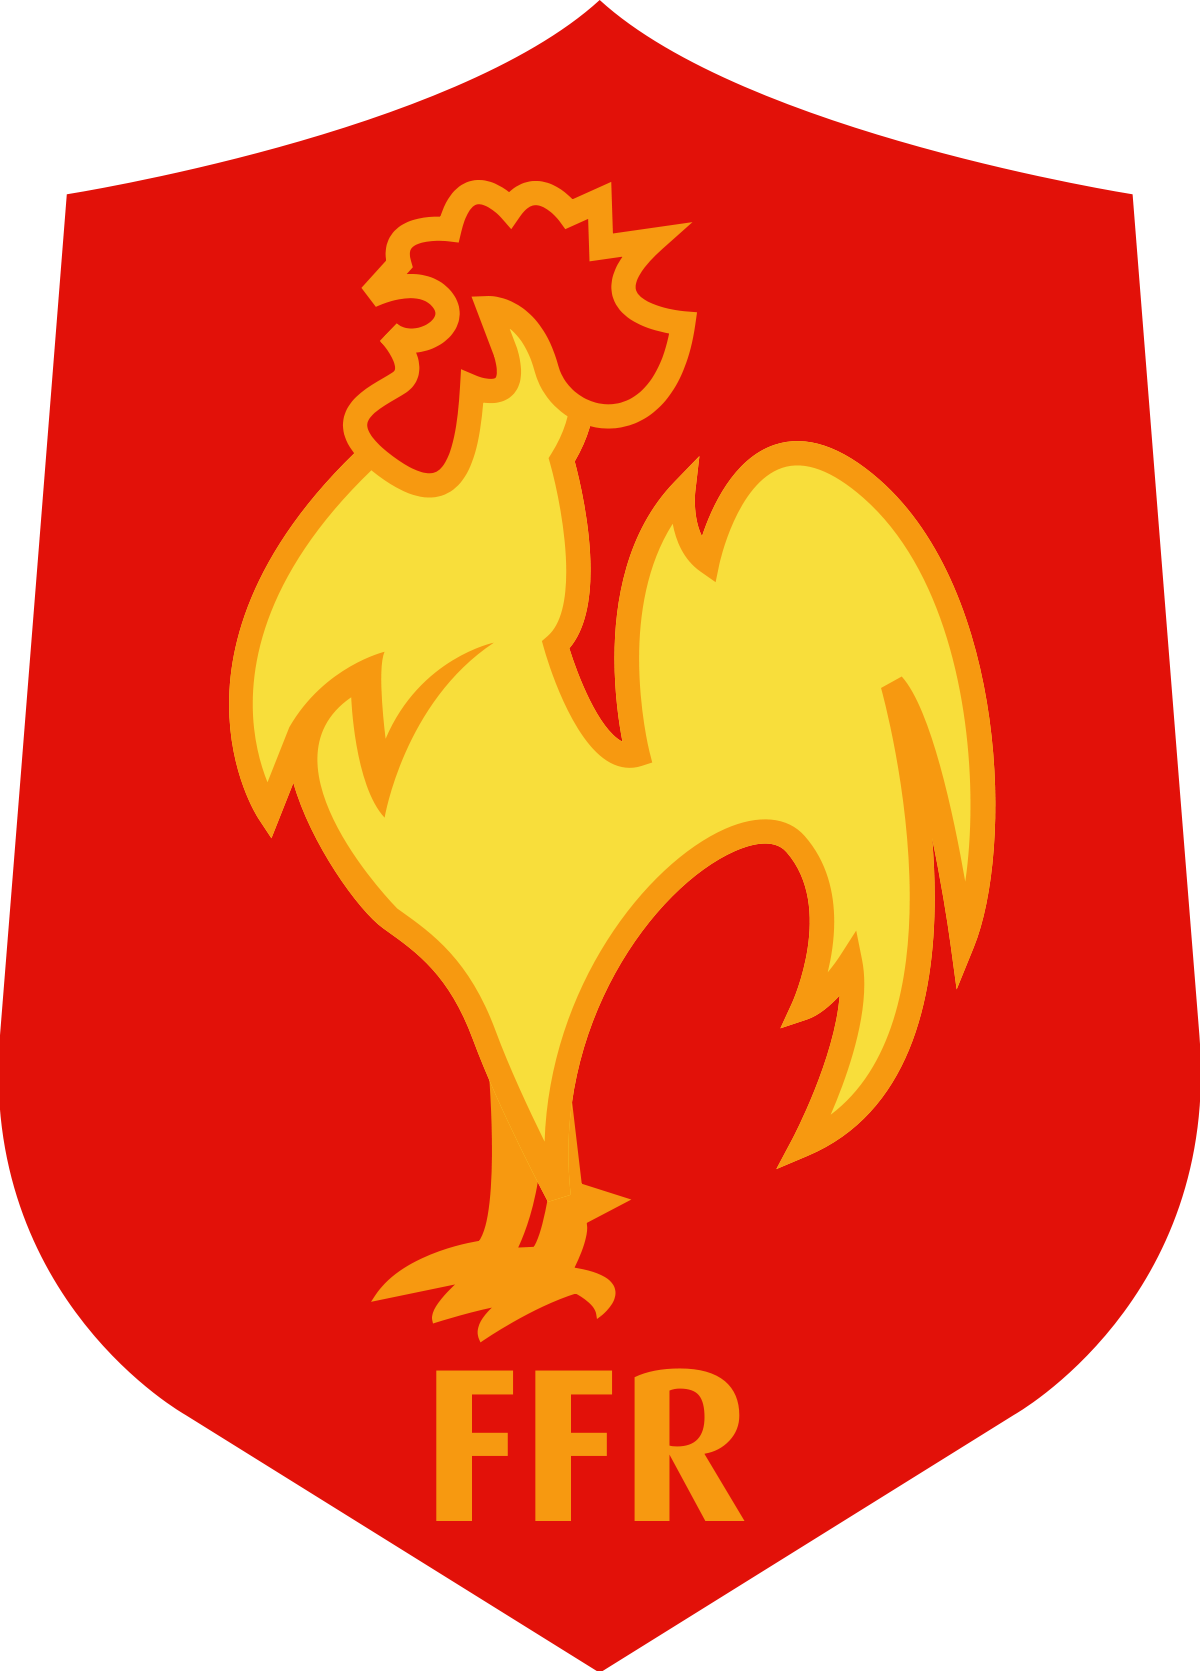 2017 clipart golden rooster. France national rugby union